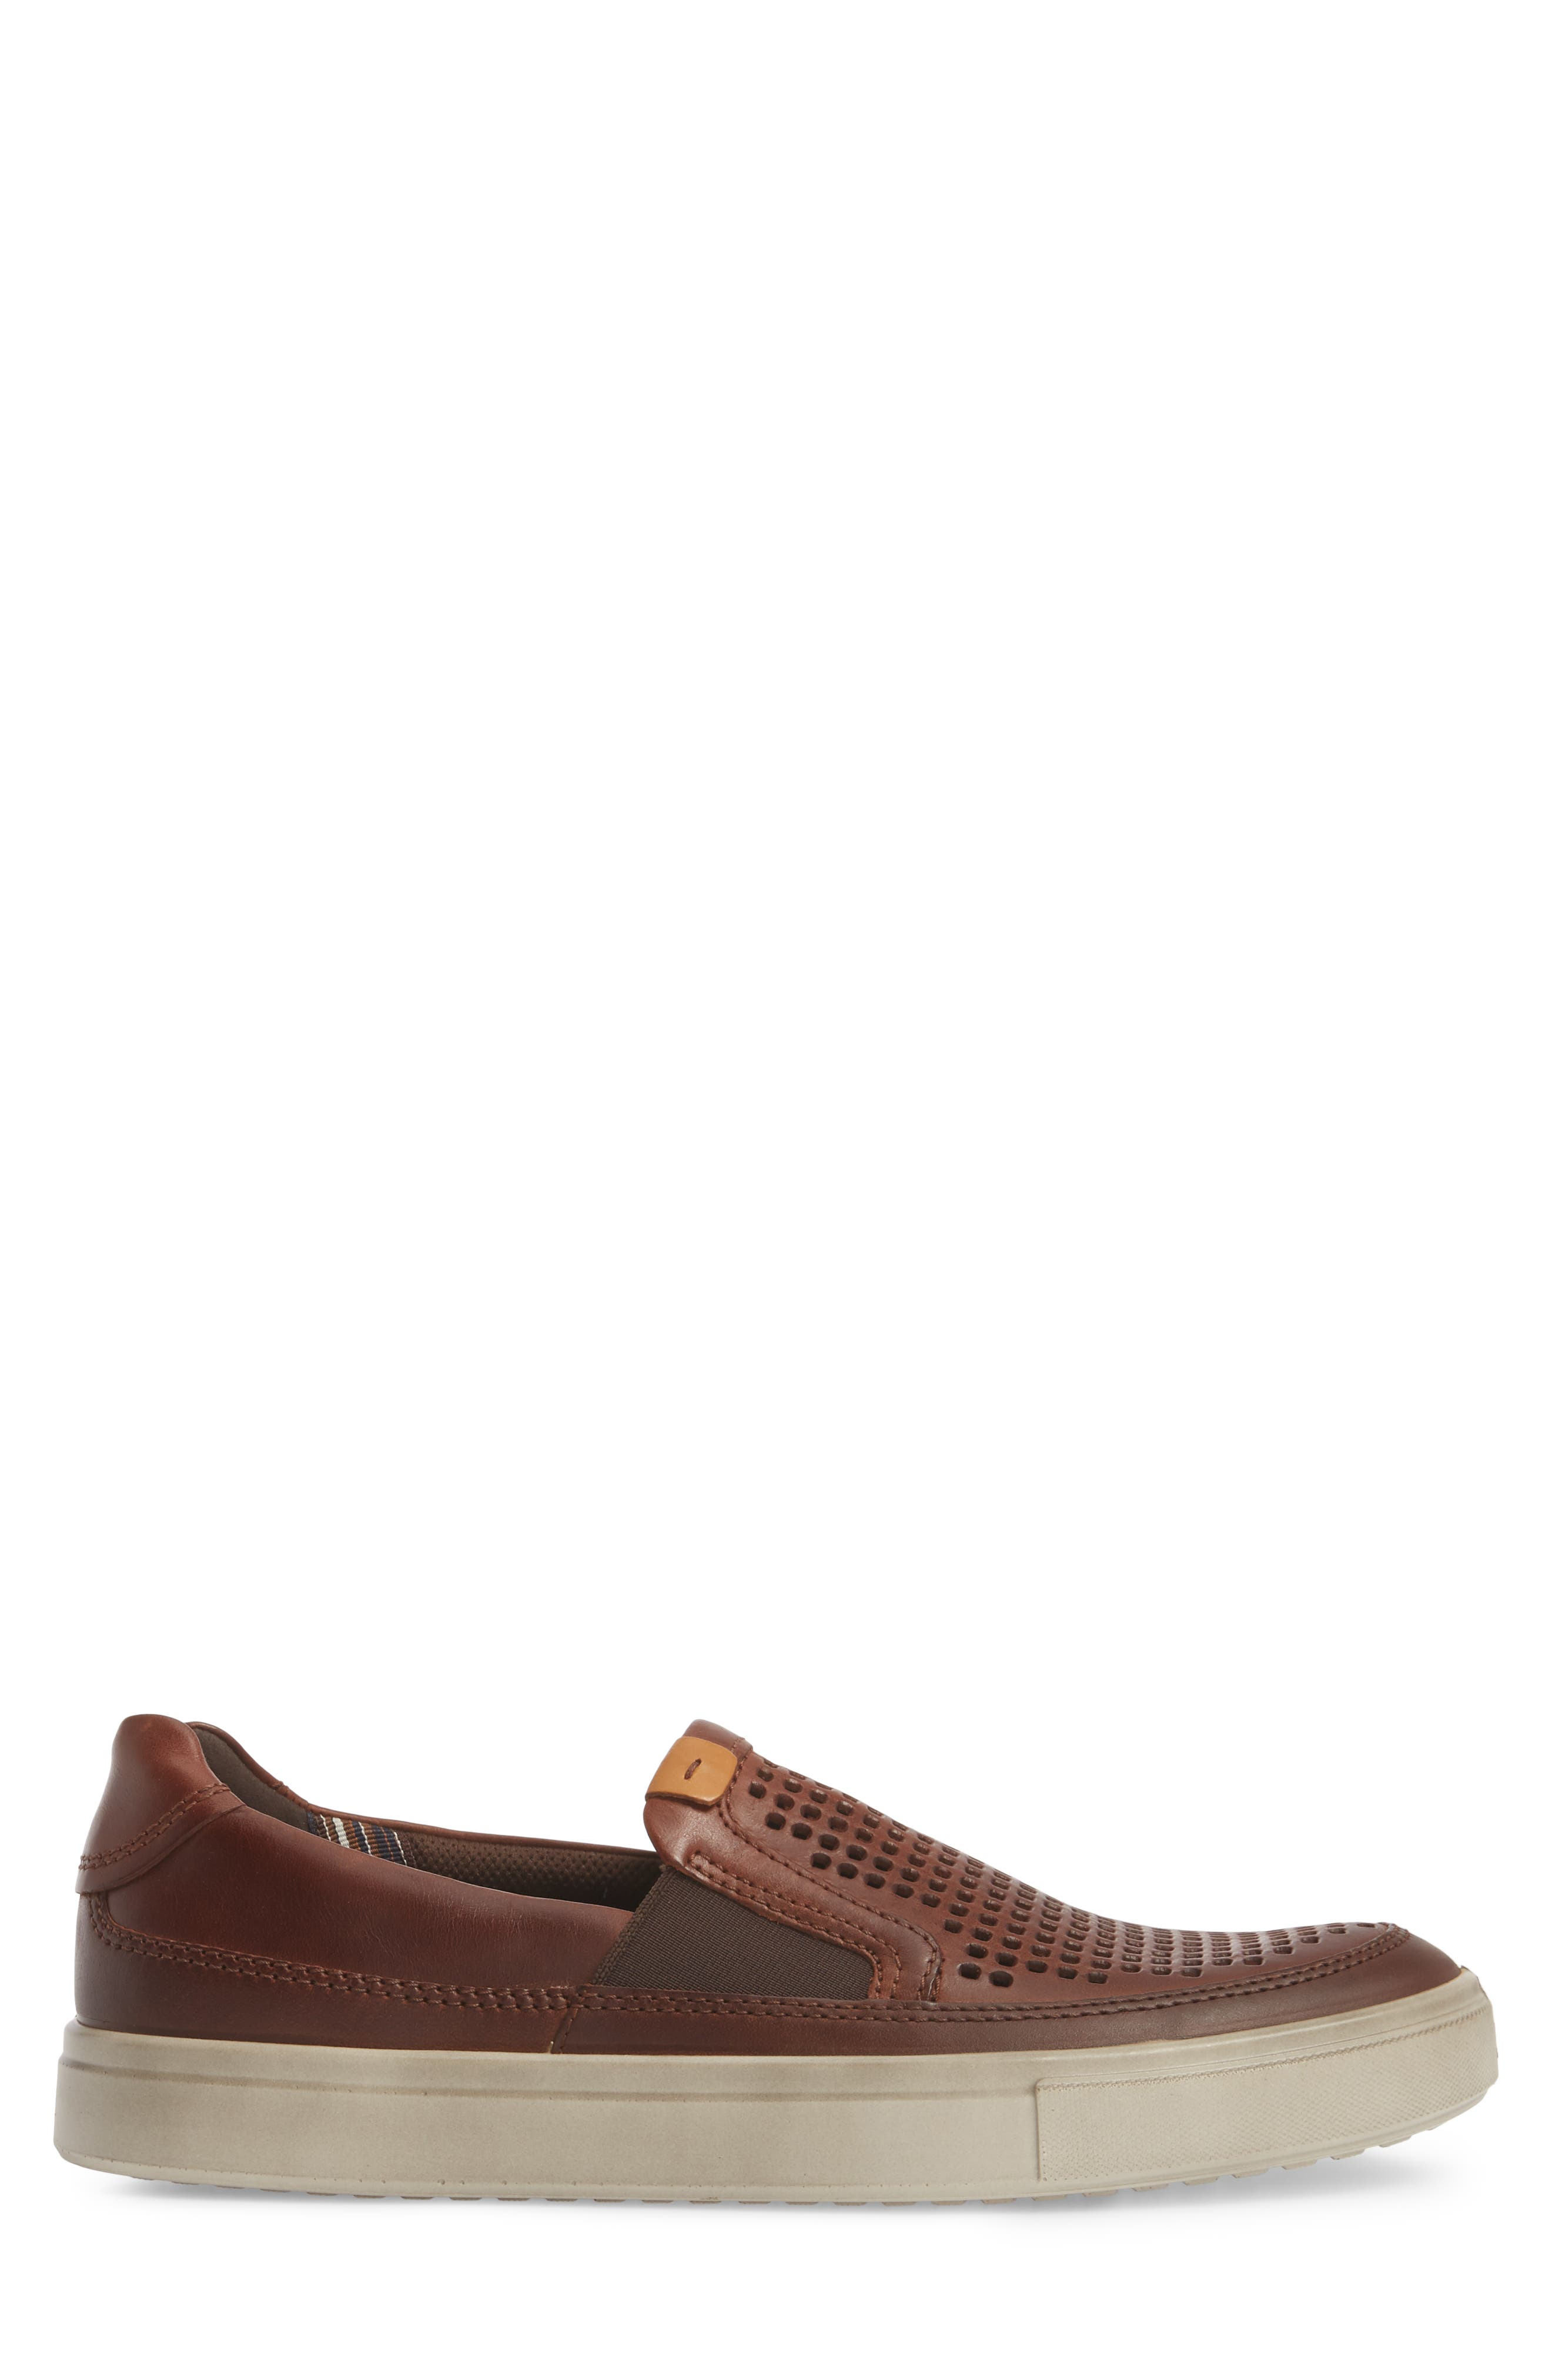 Kyle Perforated Slip-On Sneaker,                             Alternate thumbnail 3, color,                             Cognac Leather